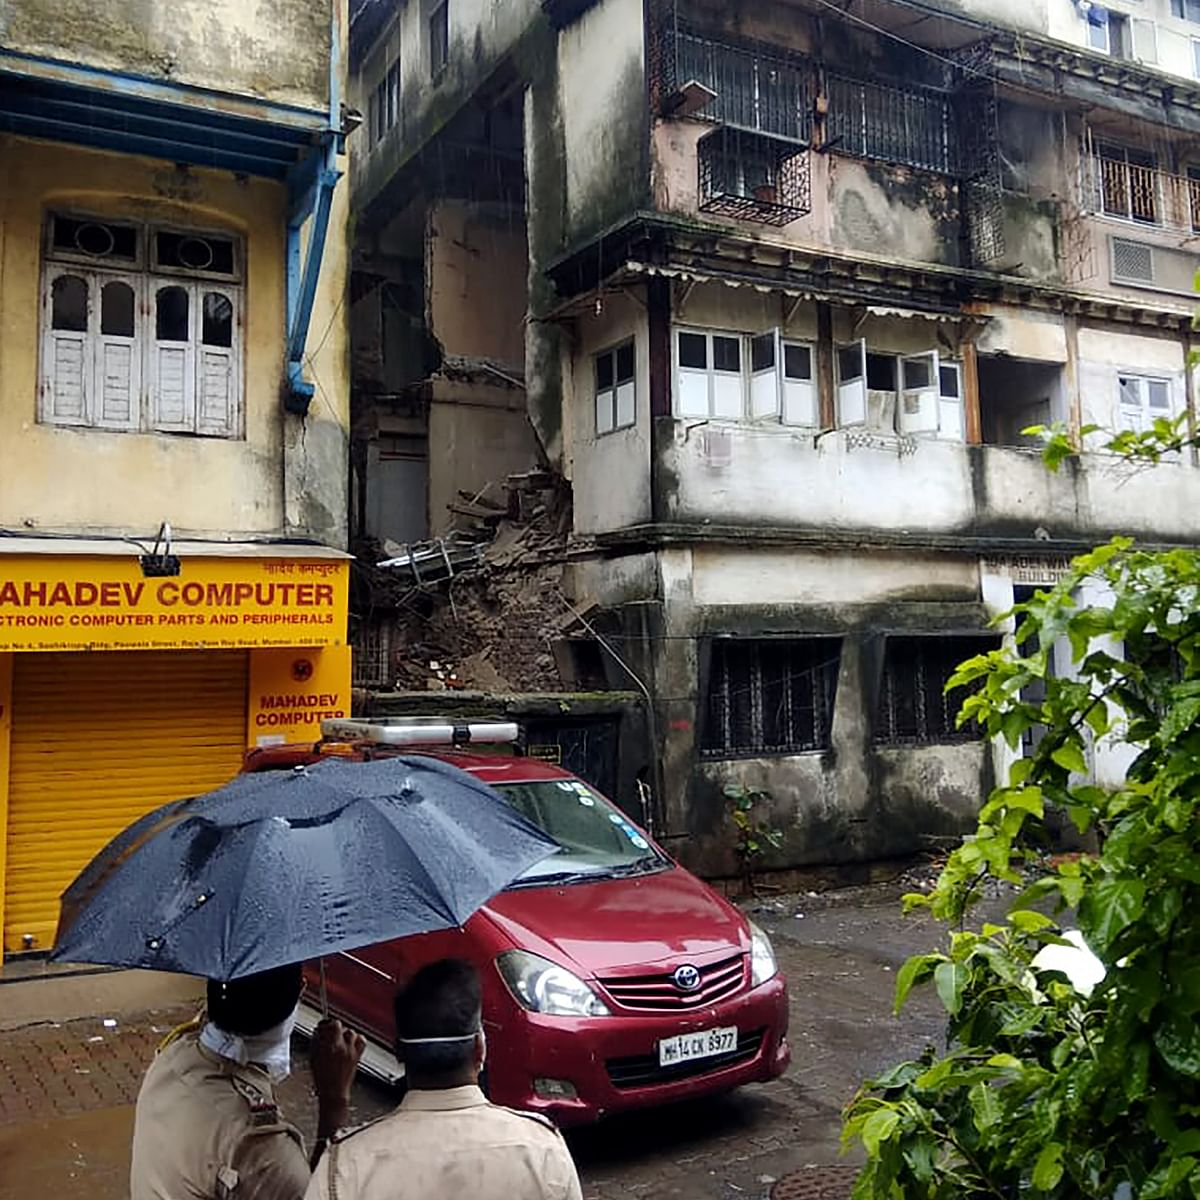 Mumbai: Two injured after building collapses at Grant Road